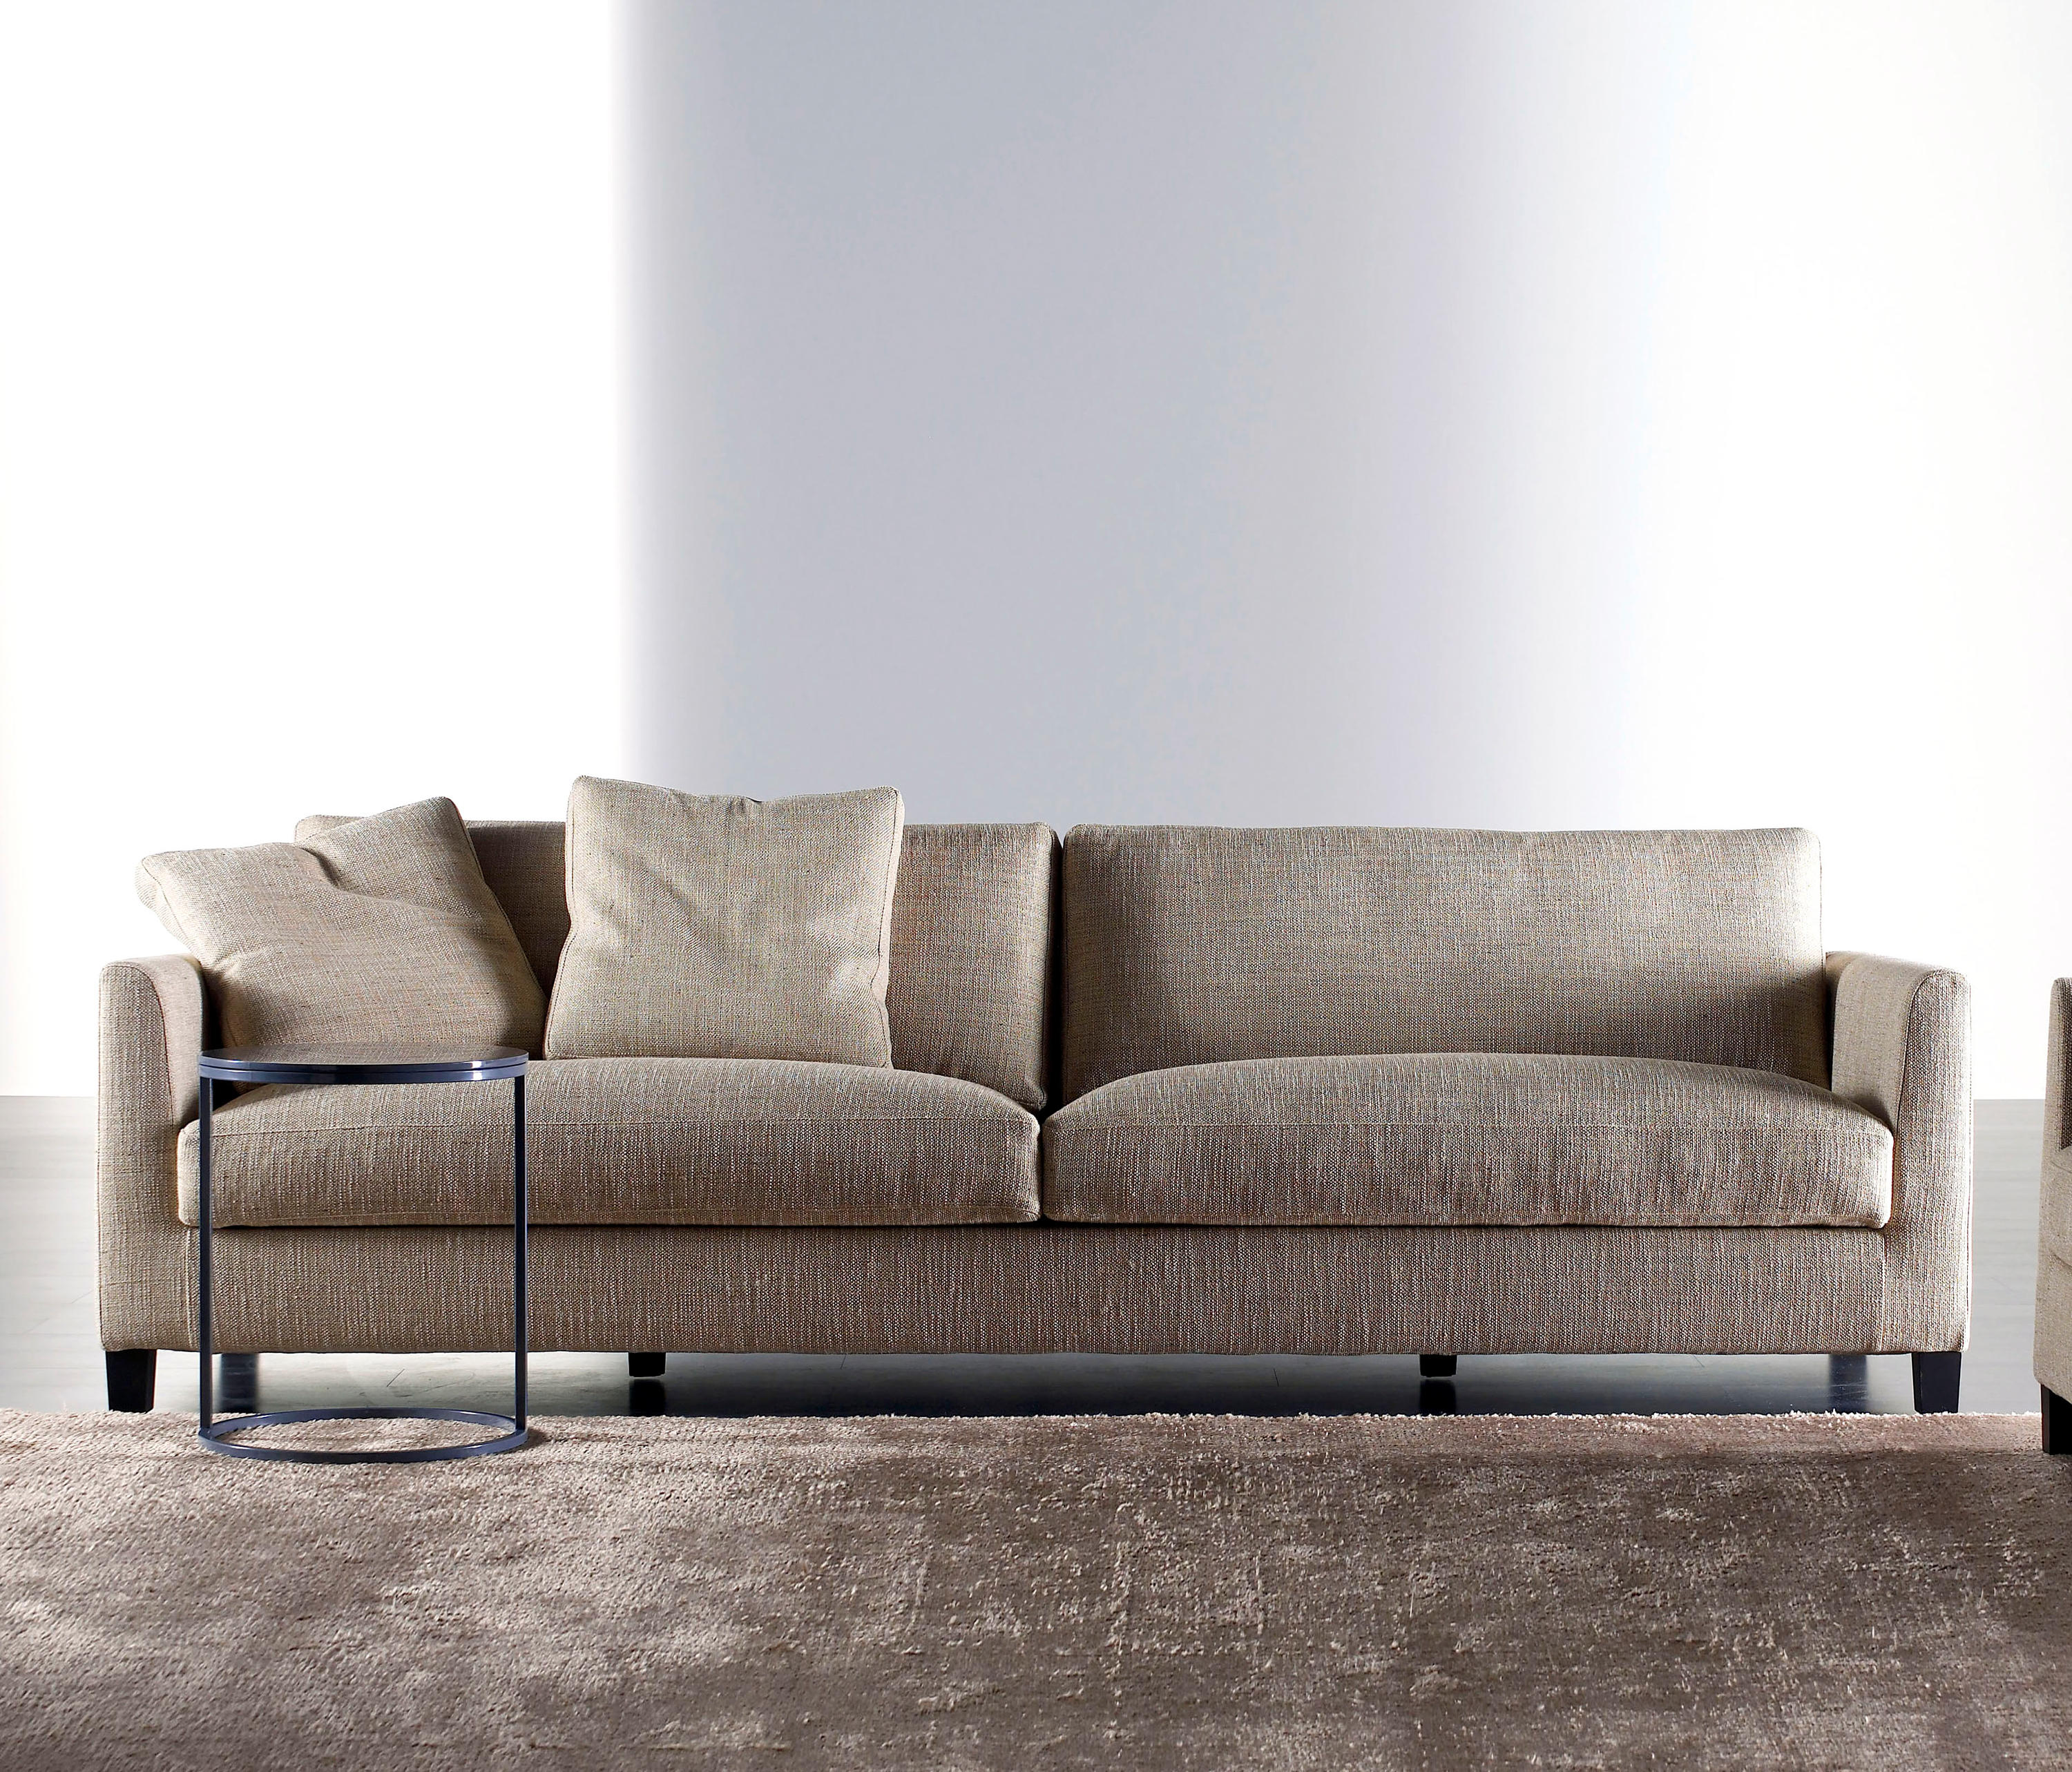 biss maxi sofa 260 lounge sofas from meridiani architonic. Black Bedroom Furniture Sets. Home Design Ideas